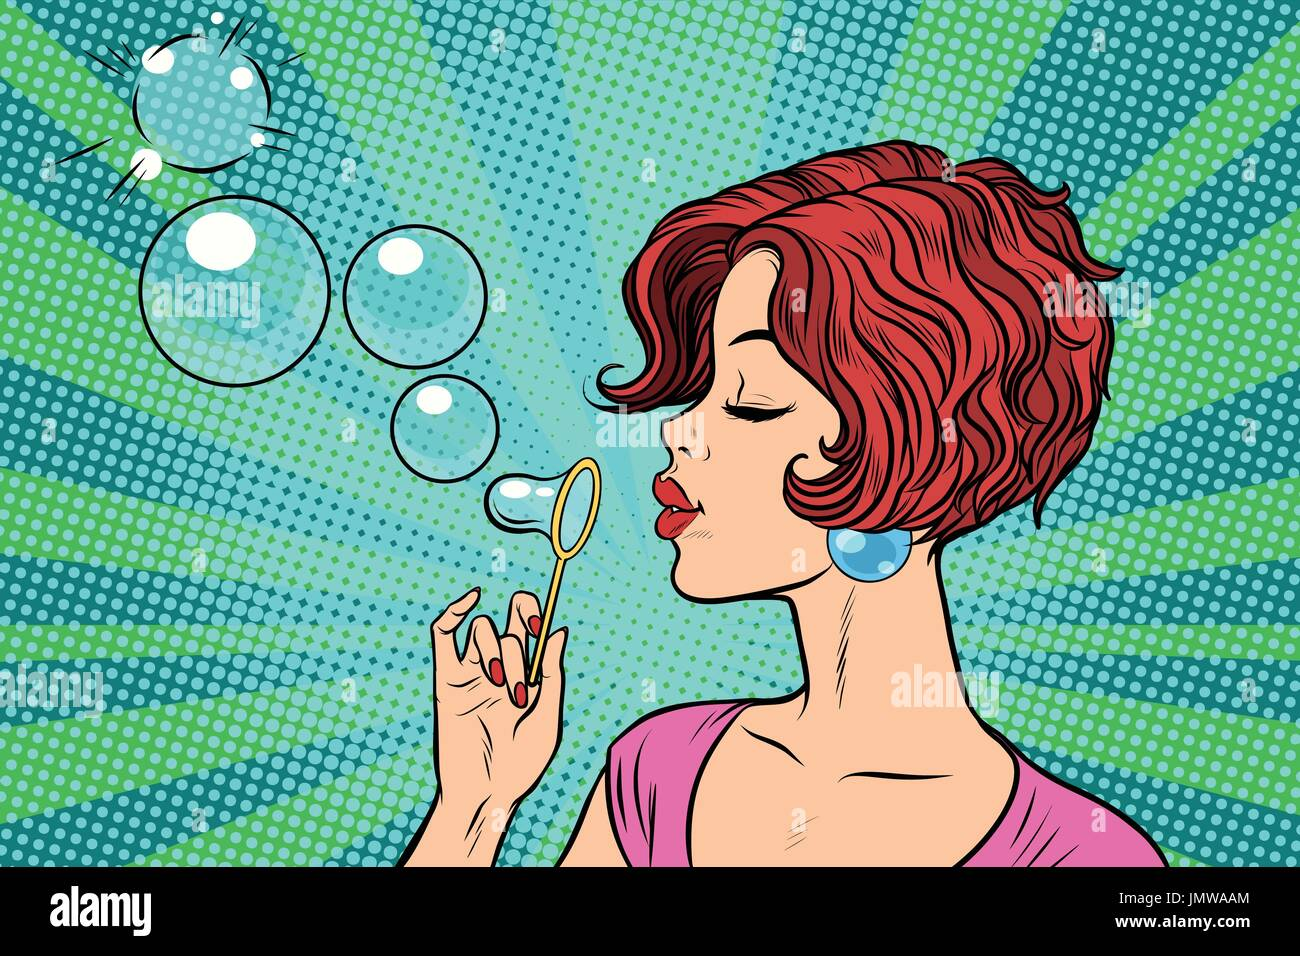 Young woman blowing bubbles - Stock Vector